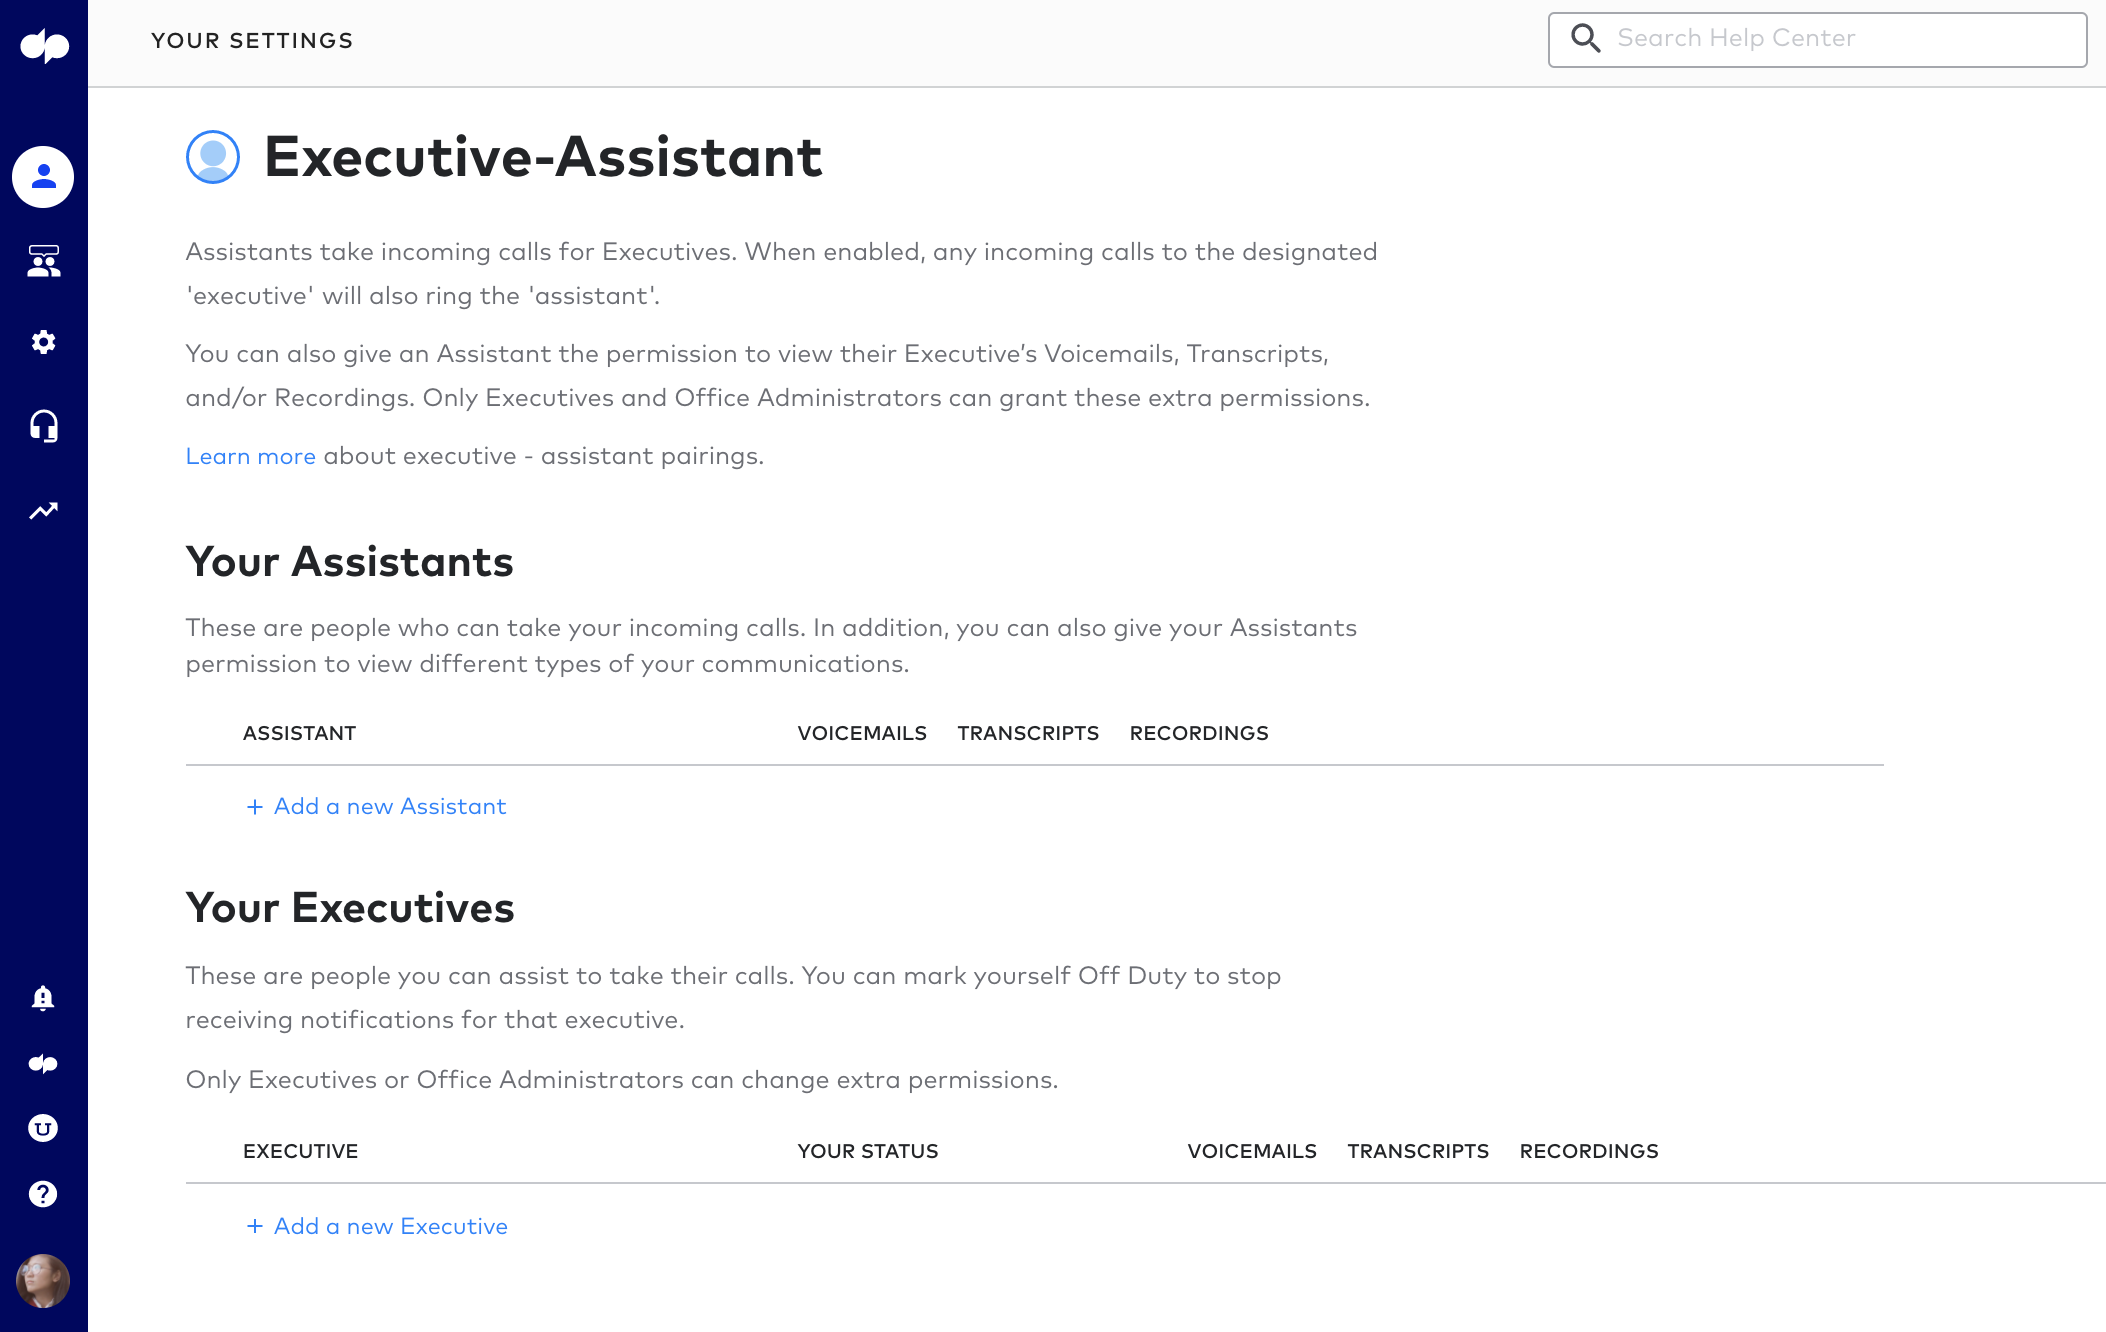 dp-profile-executive-assistant.png